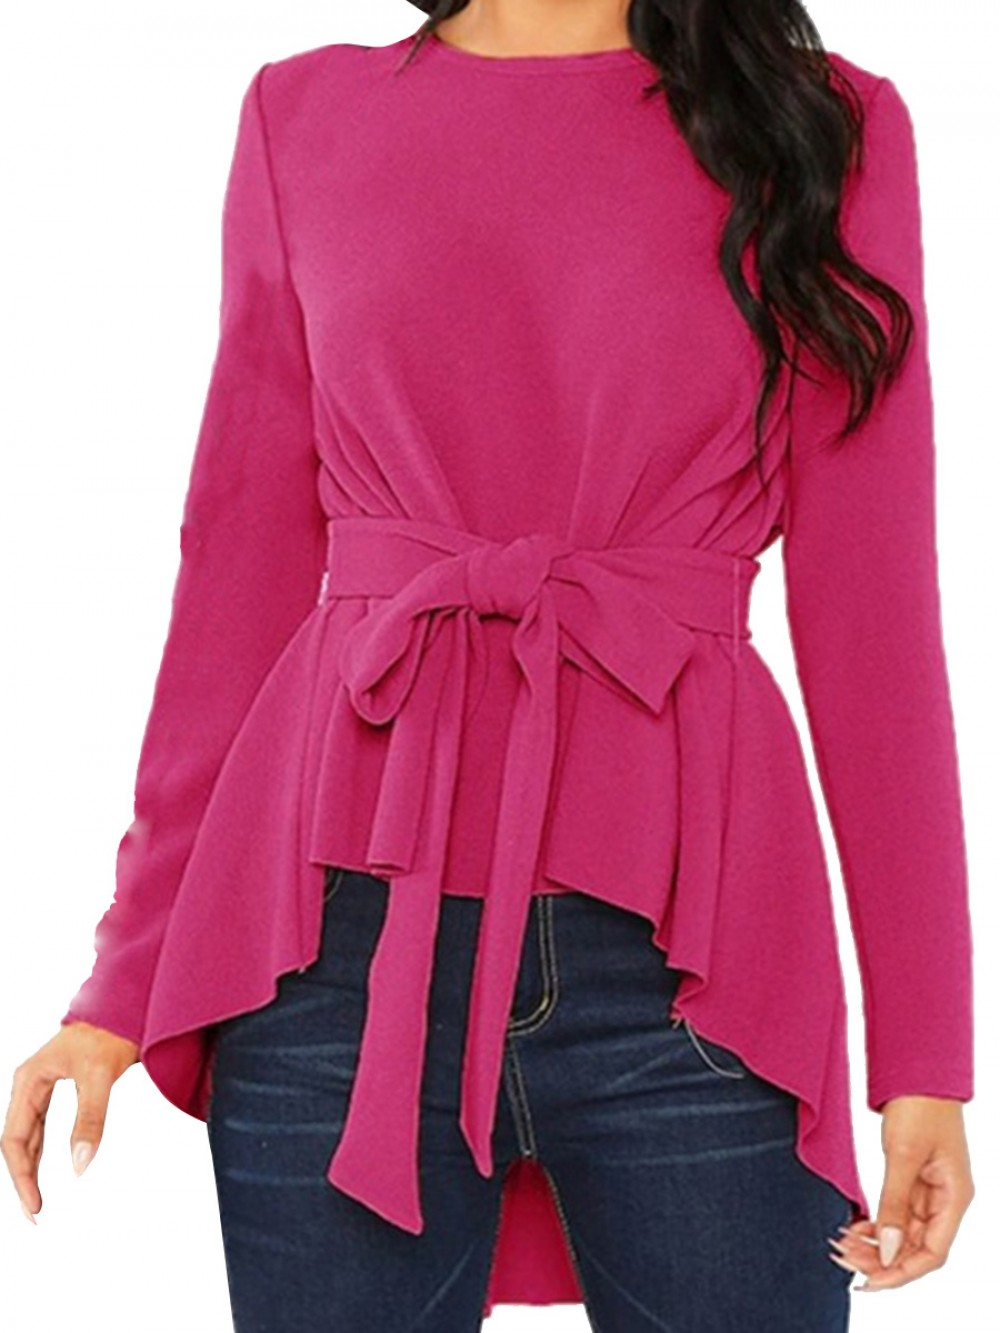 Affordable Rose Red Round Neck Shirt Tie High-Low Hem Unique Fashion